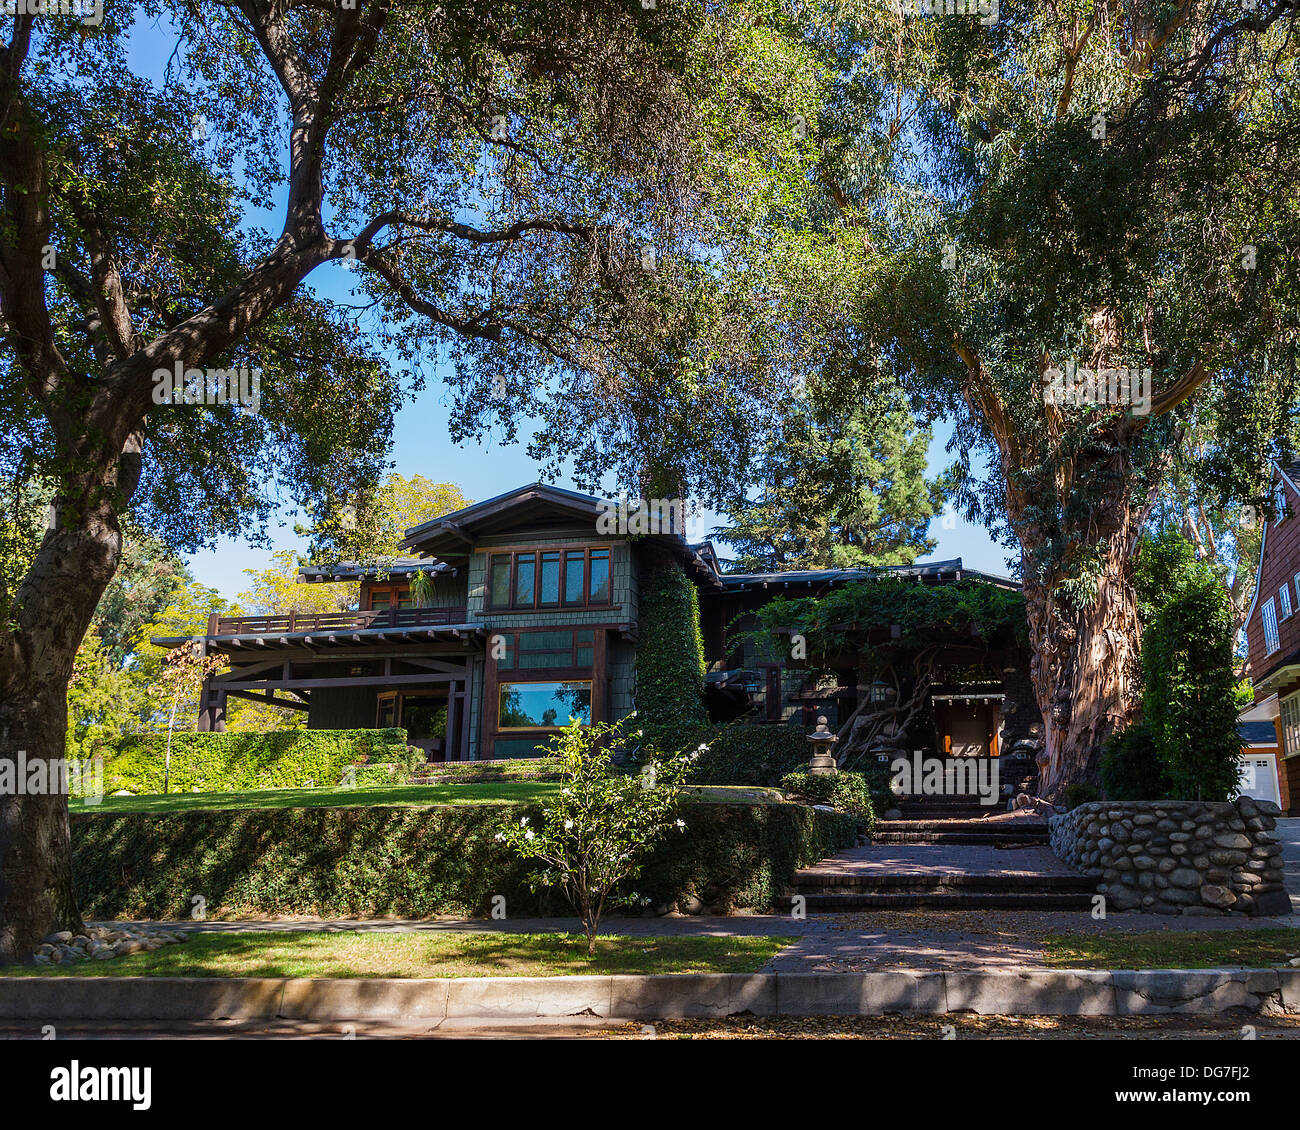 The Duncan Irwin House 1908 On Grand Avenue In Pasadena California A Green And Bungalow Style Arts Crafts Home